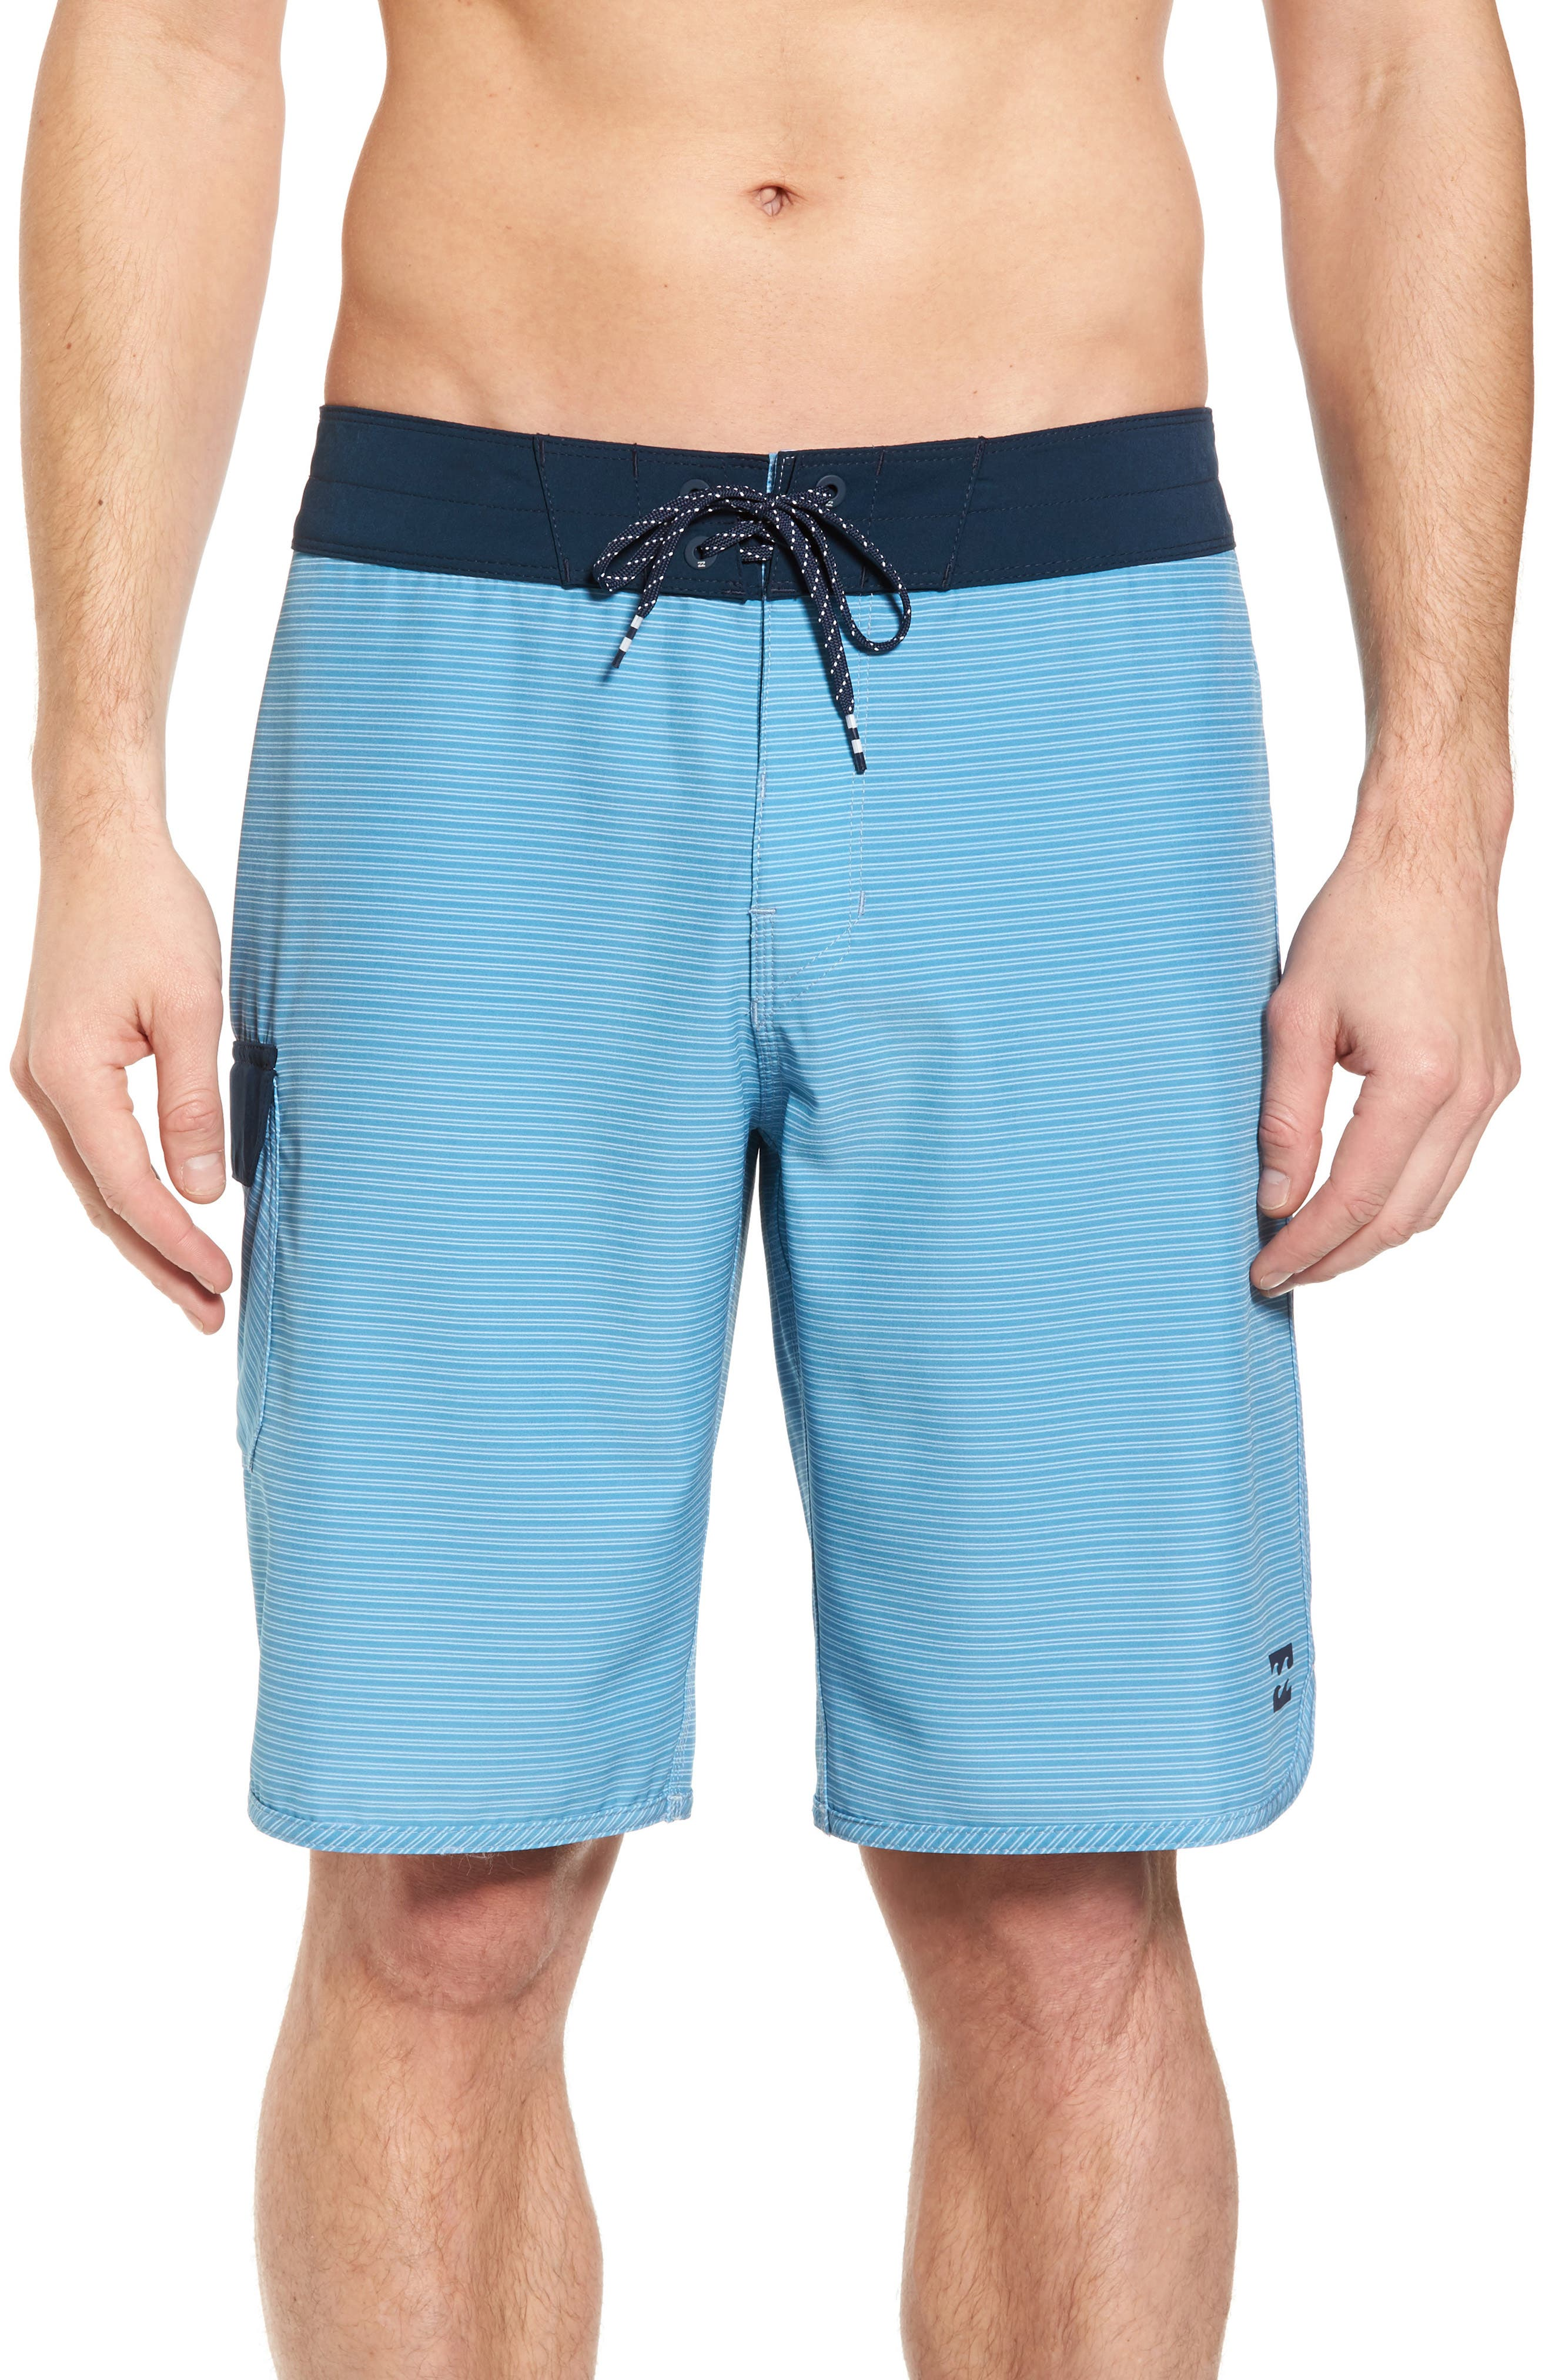 Alternate Image 1 Selected - Billabong 73 X Board Shorts